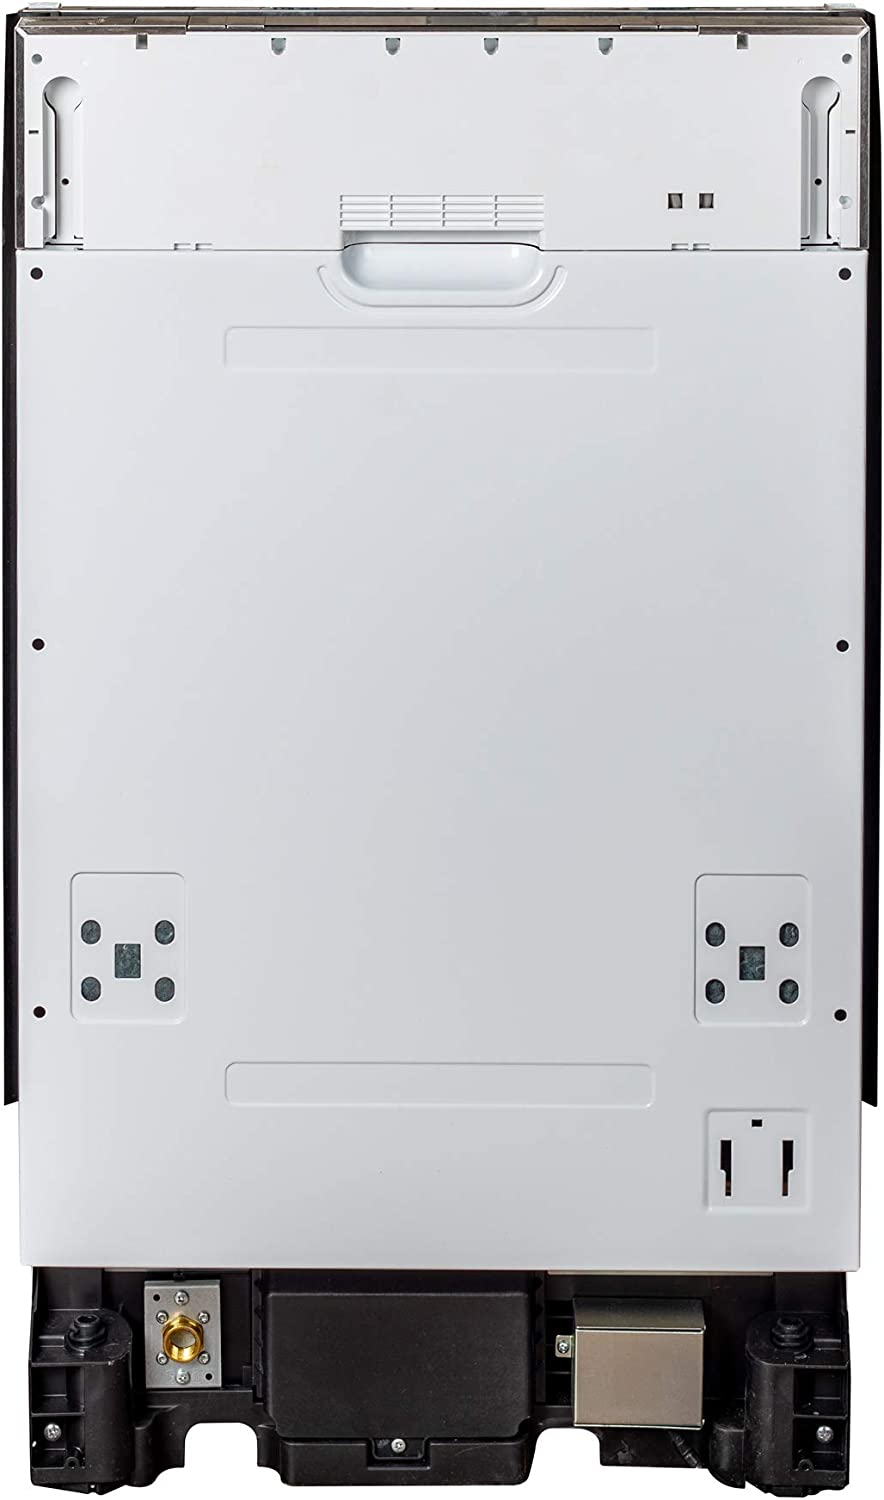 18 in. Top Control Dishwasher in Custom Panel Ready with Stainless Steel Tub 61AEyeUjFjLSL1500_